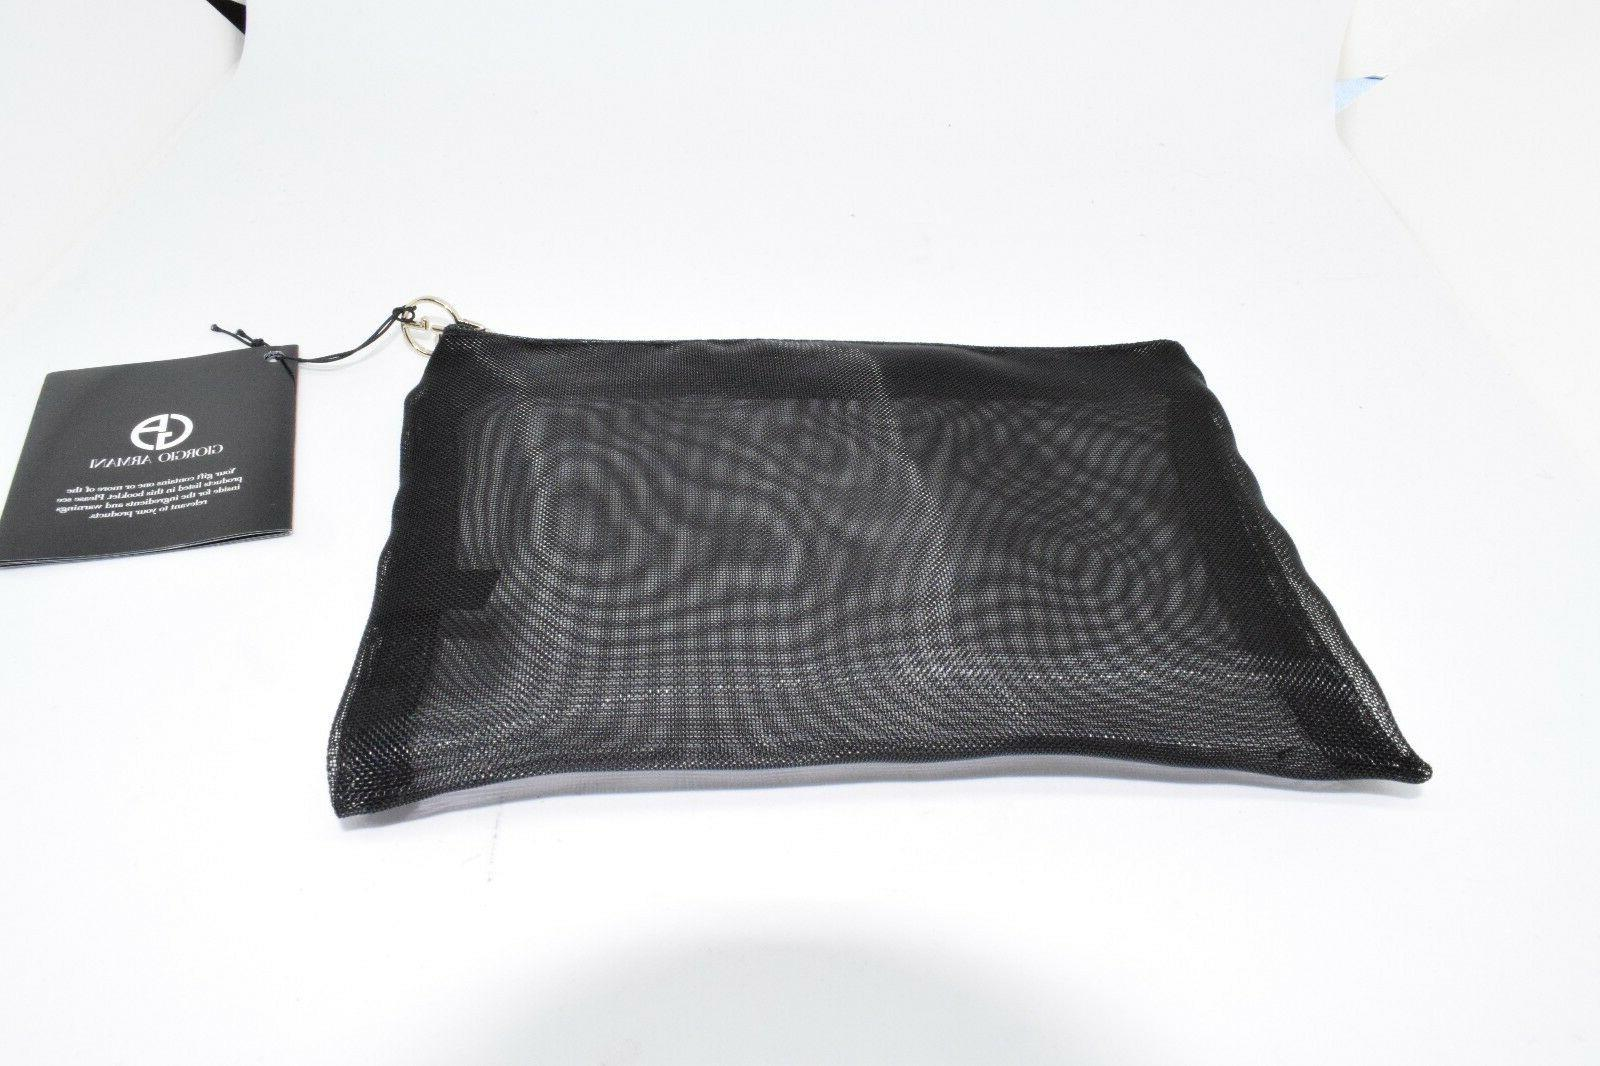 black mesh cosmetic makeup clutch bag nwt